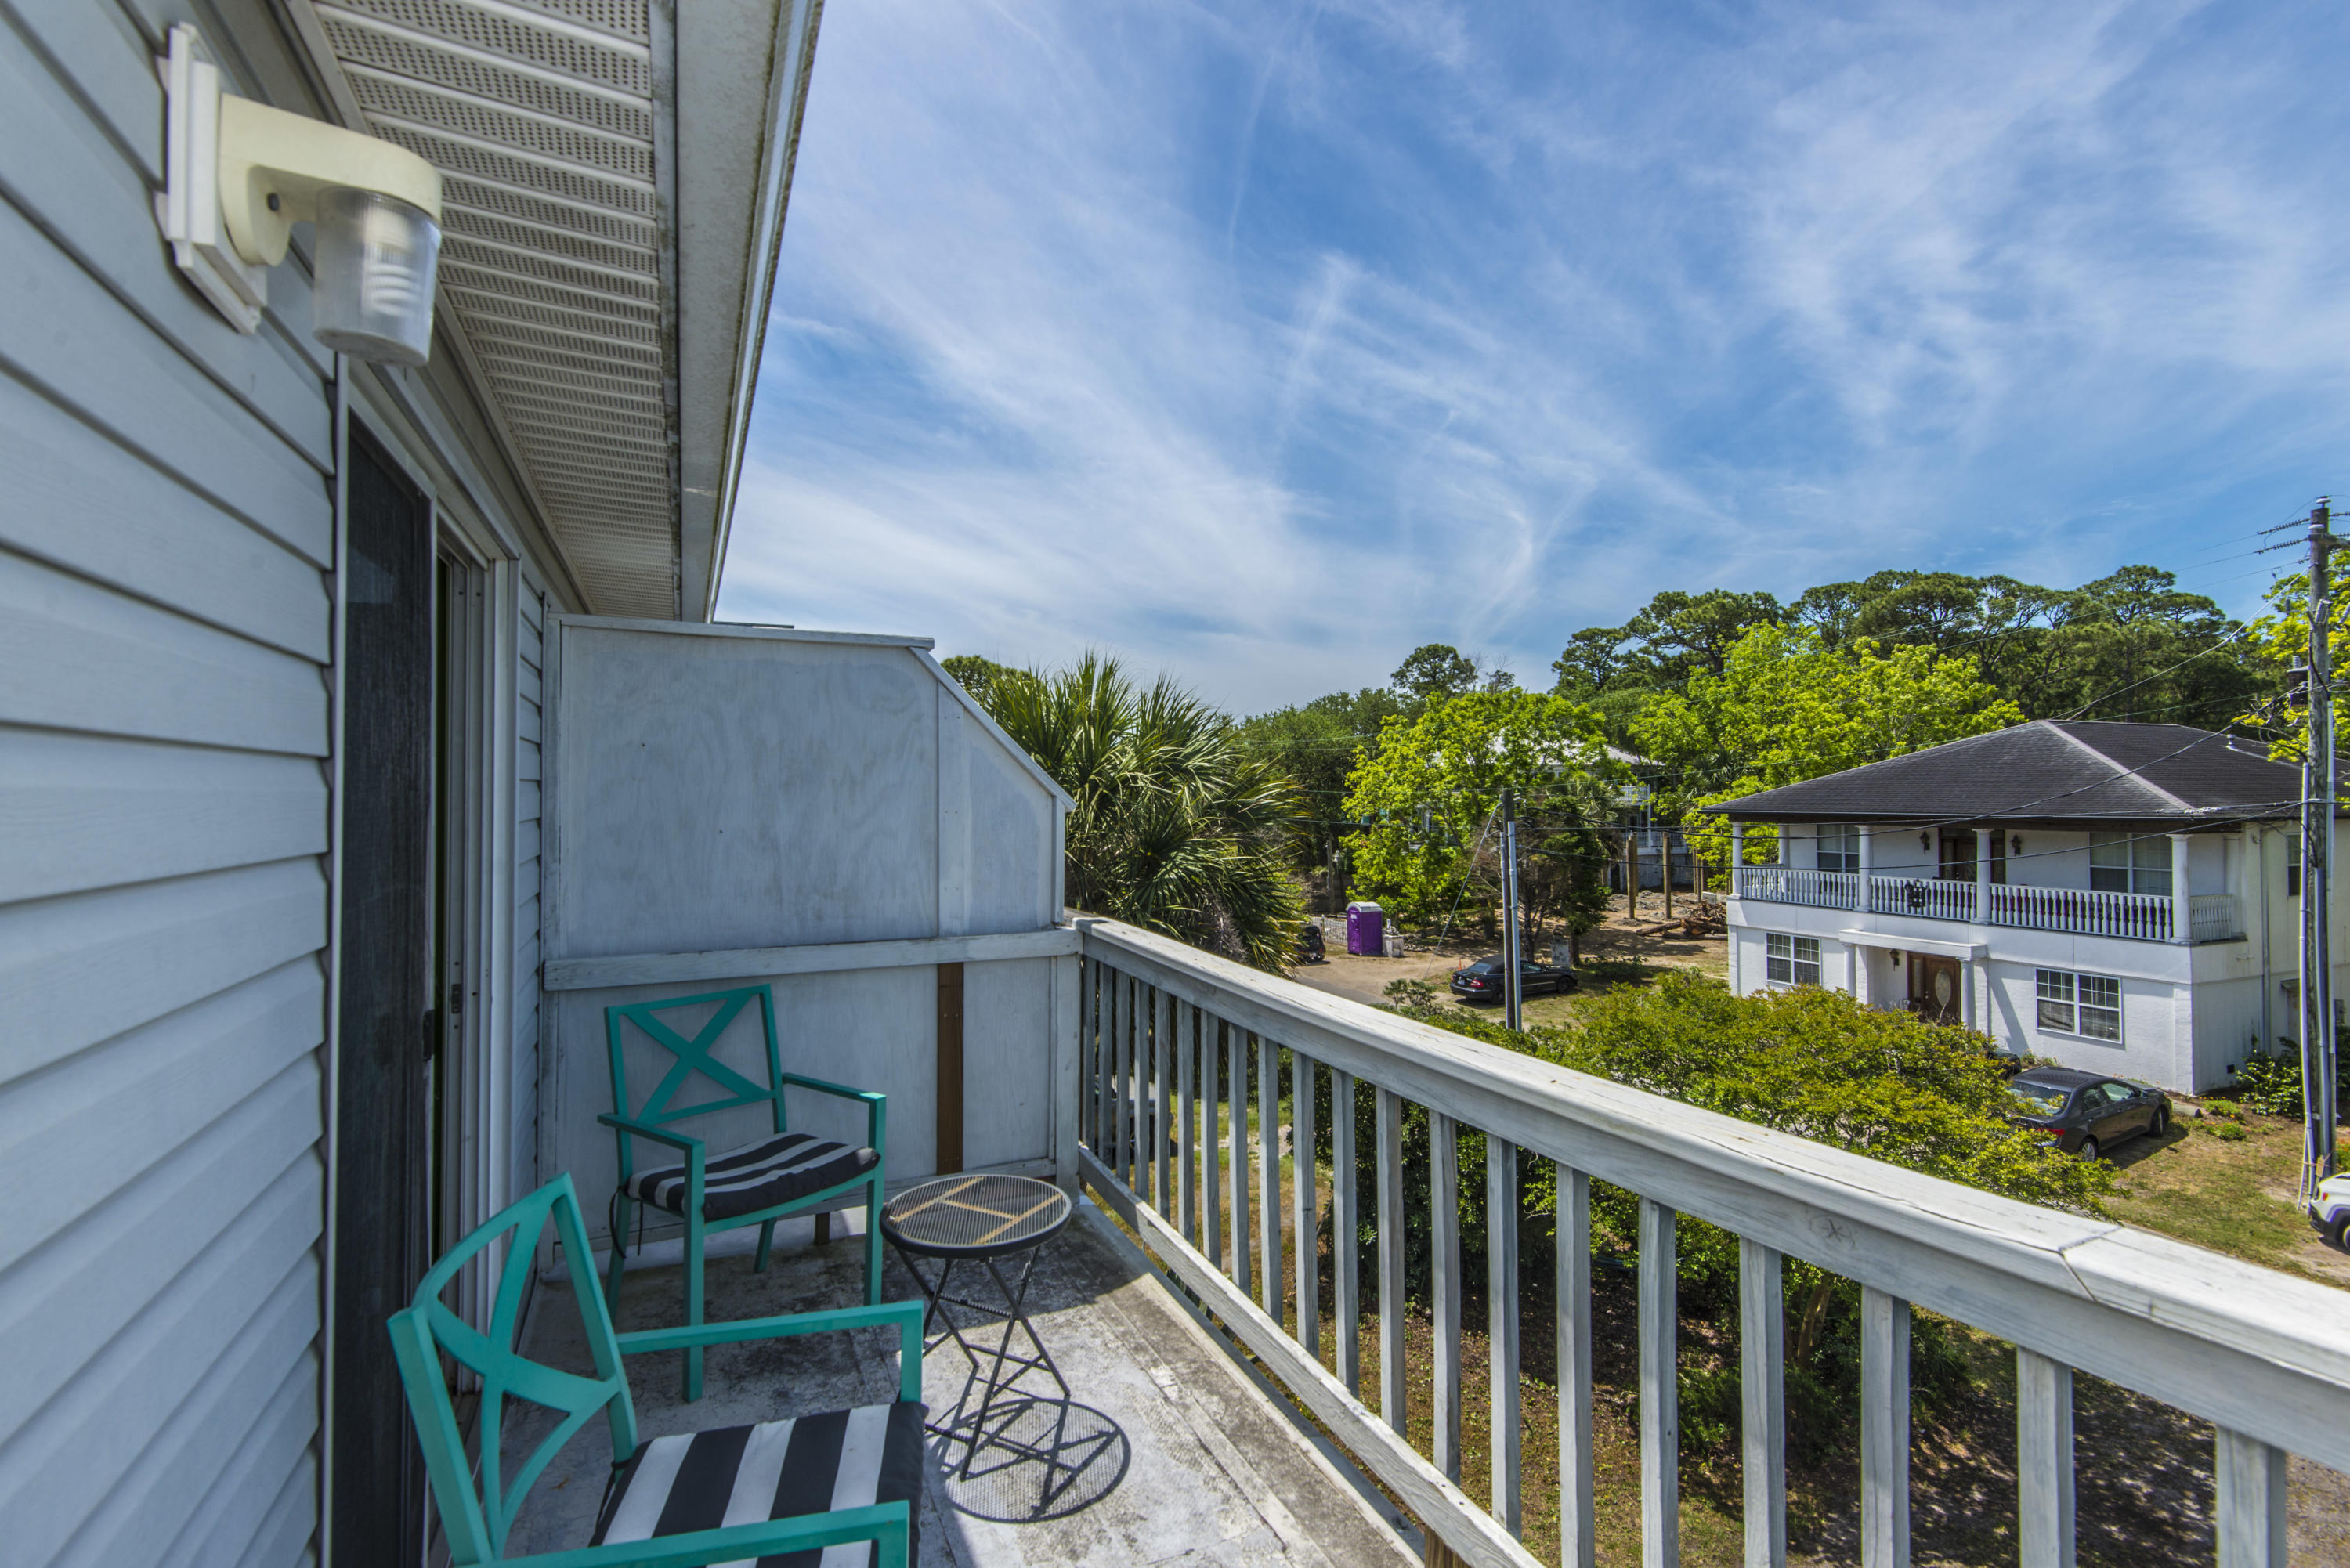 Folly Beach Homes For Sale - 82 Sandbar, Folly Beach, SC - 5